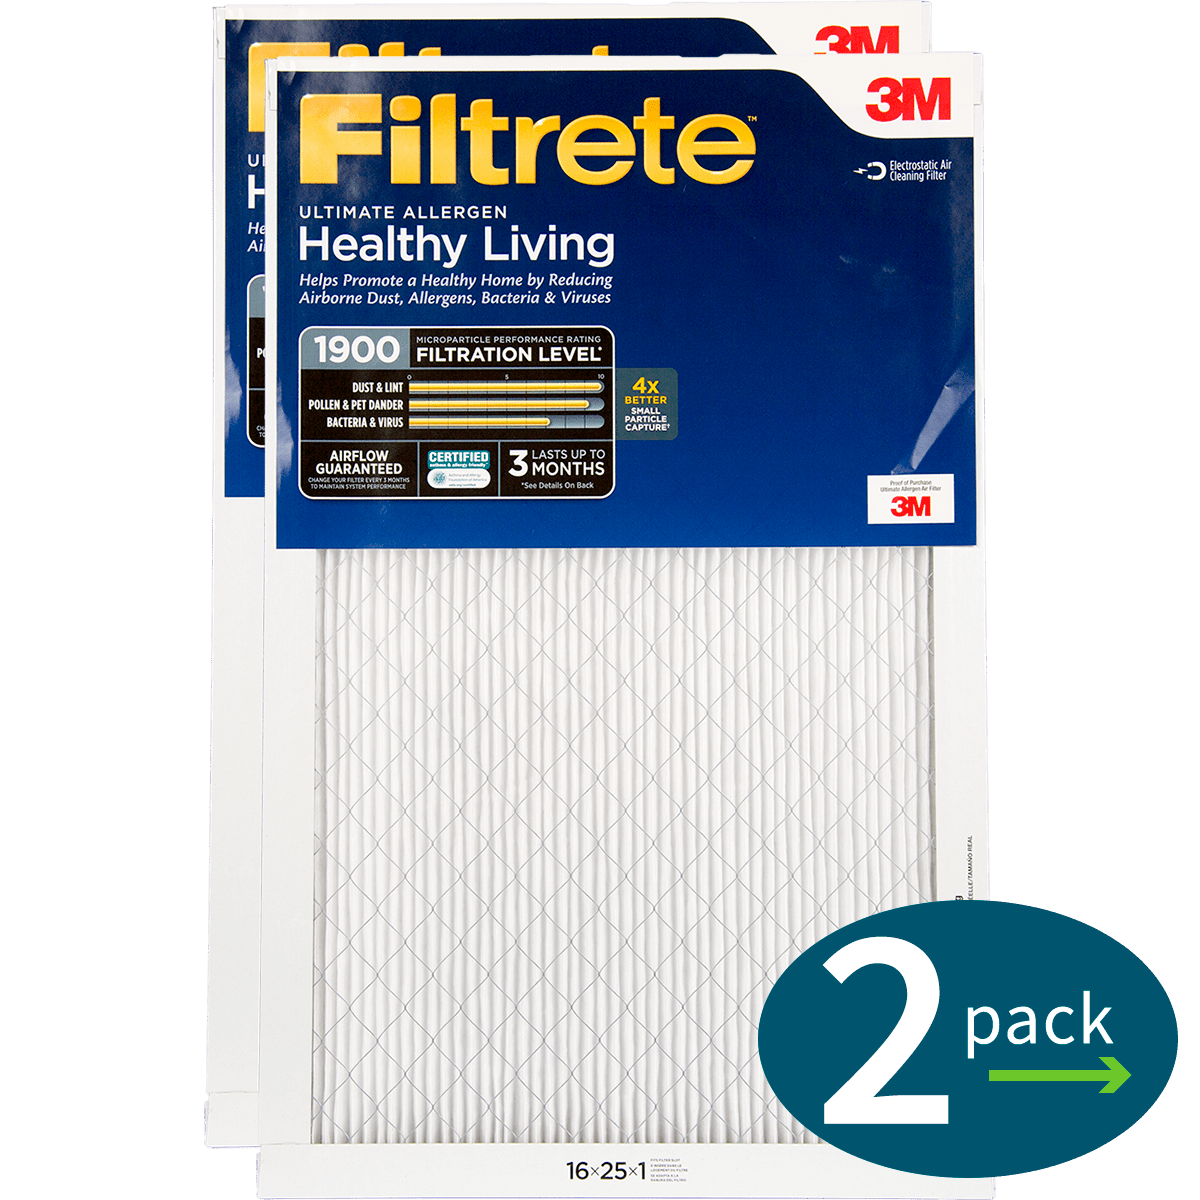 3M Filtrete Healthy Living 1900 MPR Ultimate Allergen Reduction Air Filters fi5342